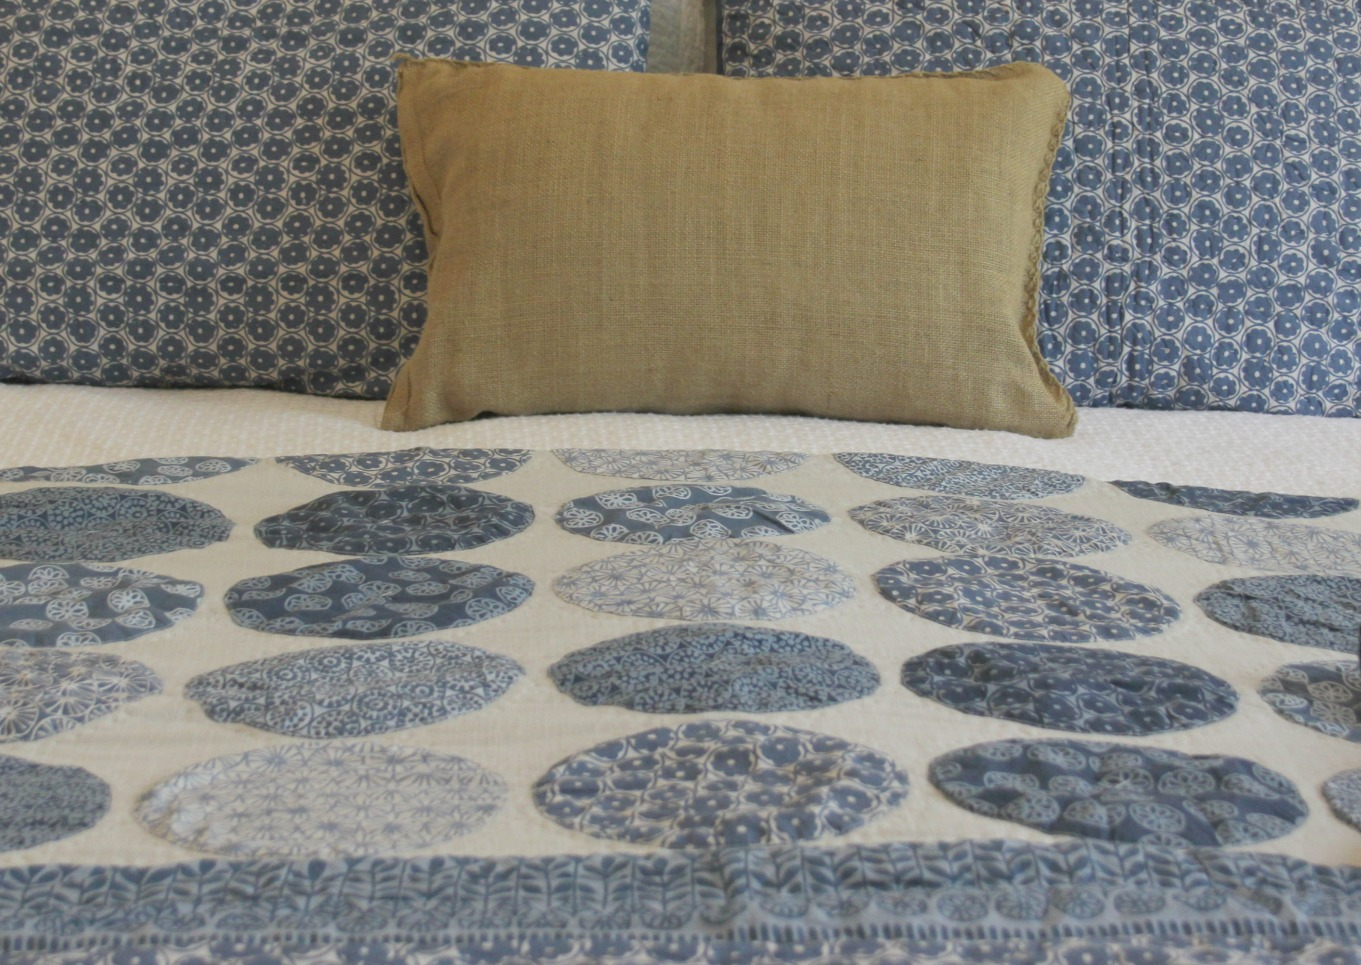 Beautiful blue moon quilt in bedroom with romantic country decor by Hello Lovely Studio